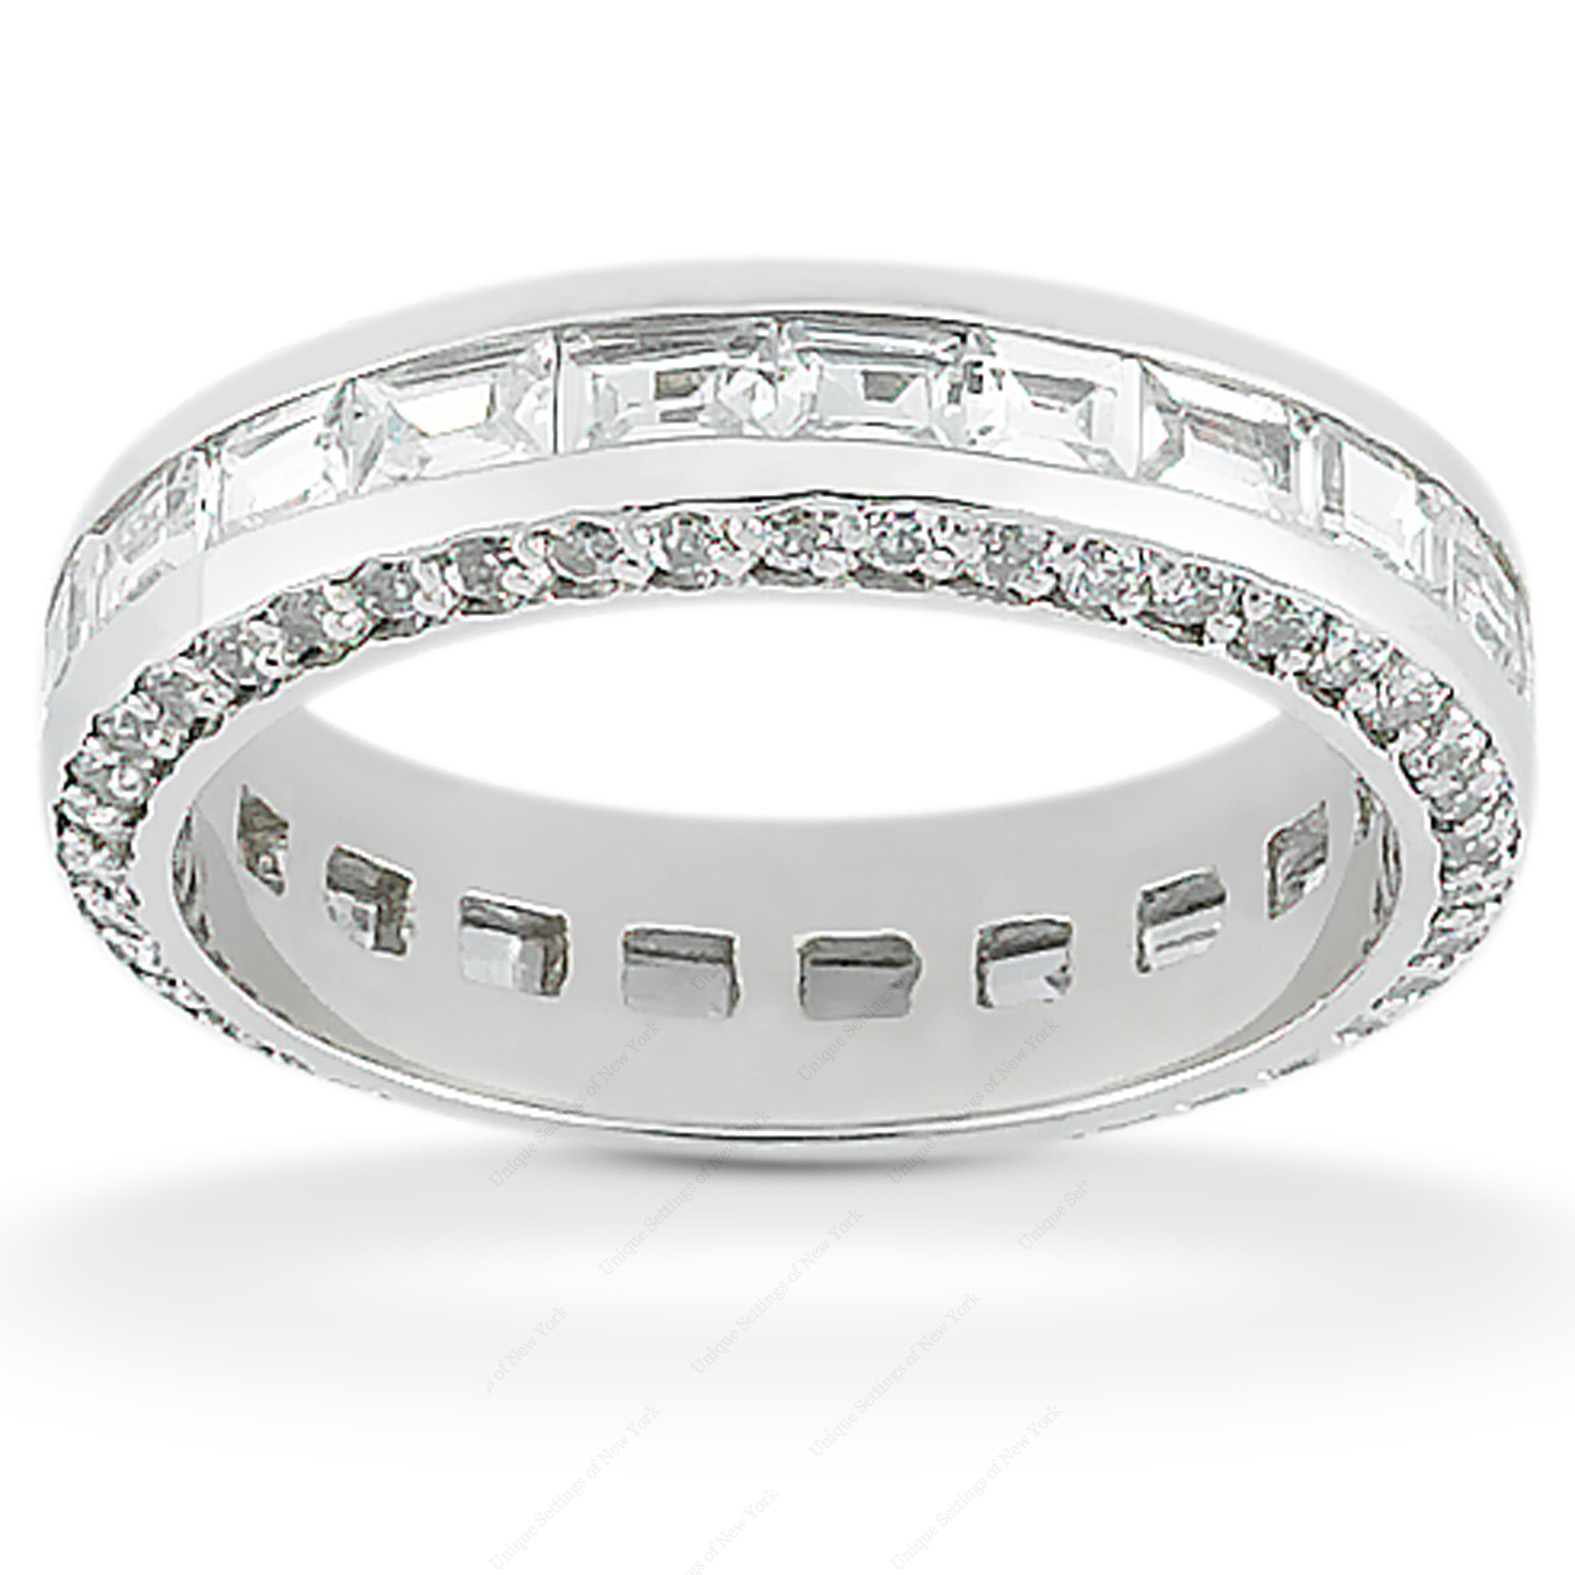 14KW Combinations Cut Diamond Unique Engagement Ring 2.41 CT. Eternity Wedding Bands Style